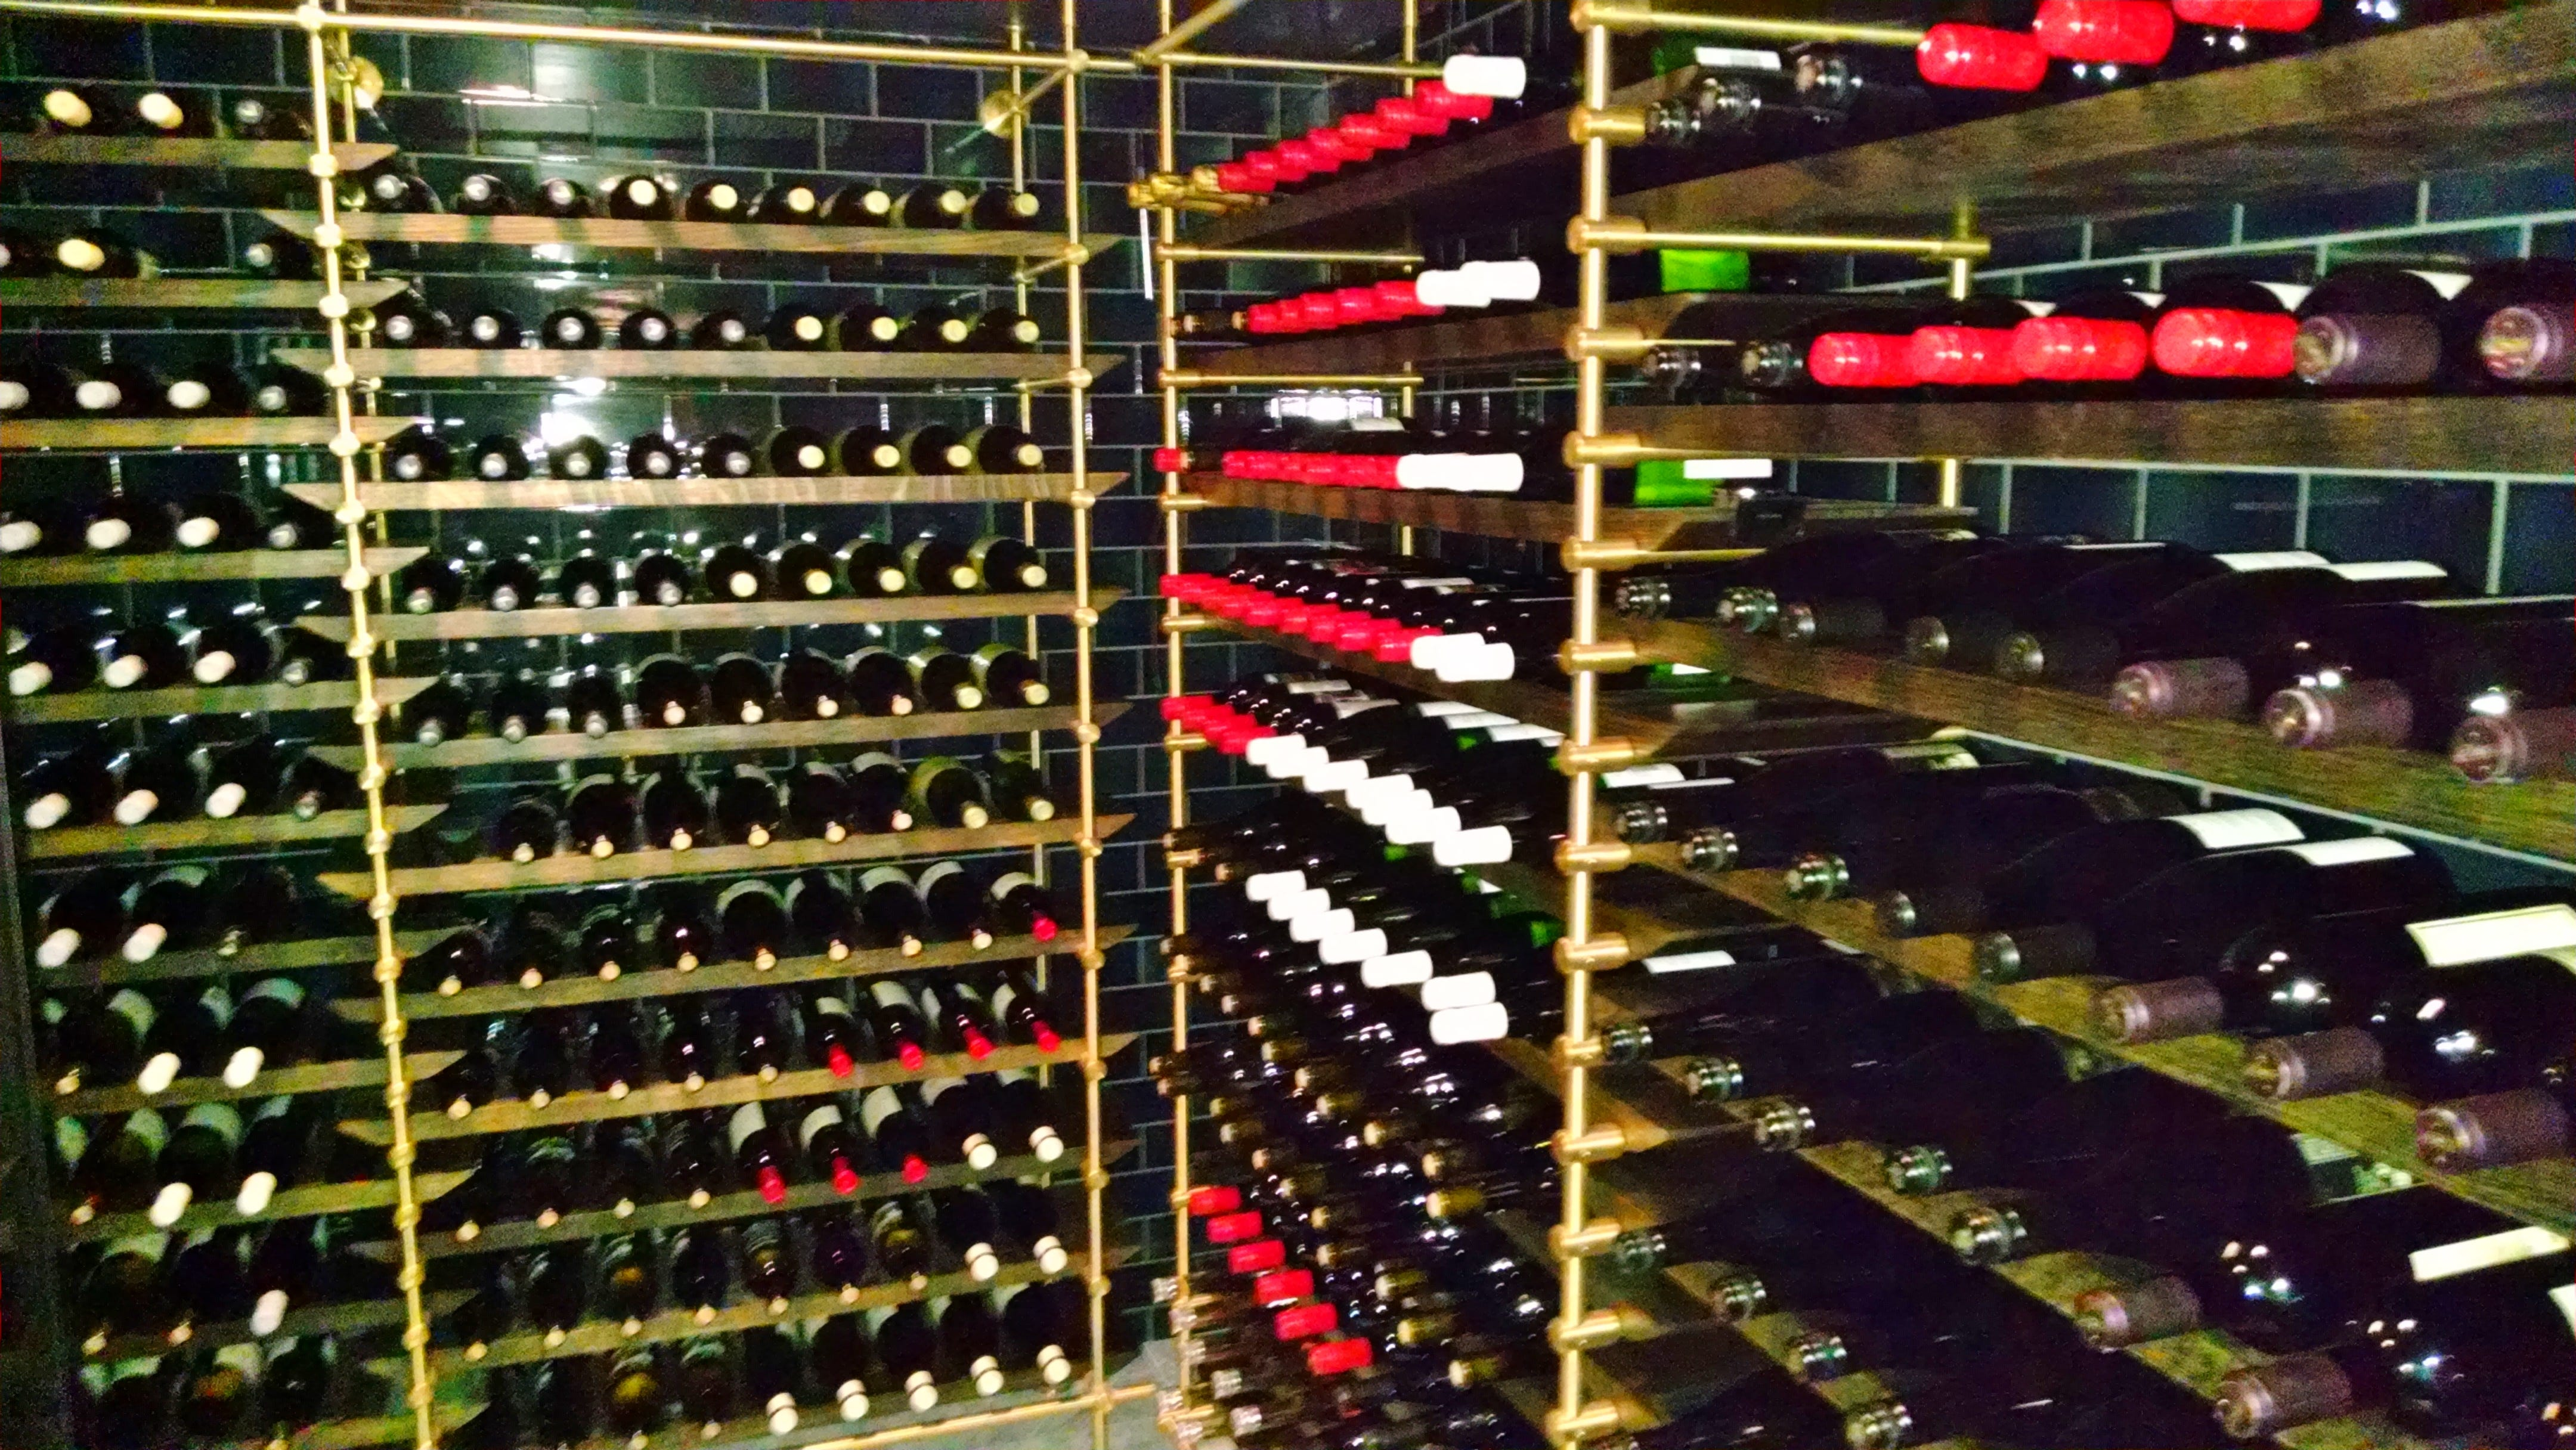 The Wine Cellar At Counter Reformation At The Parker